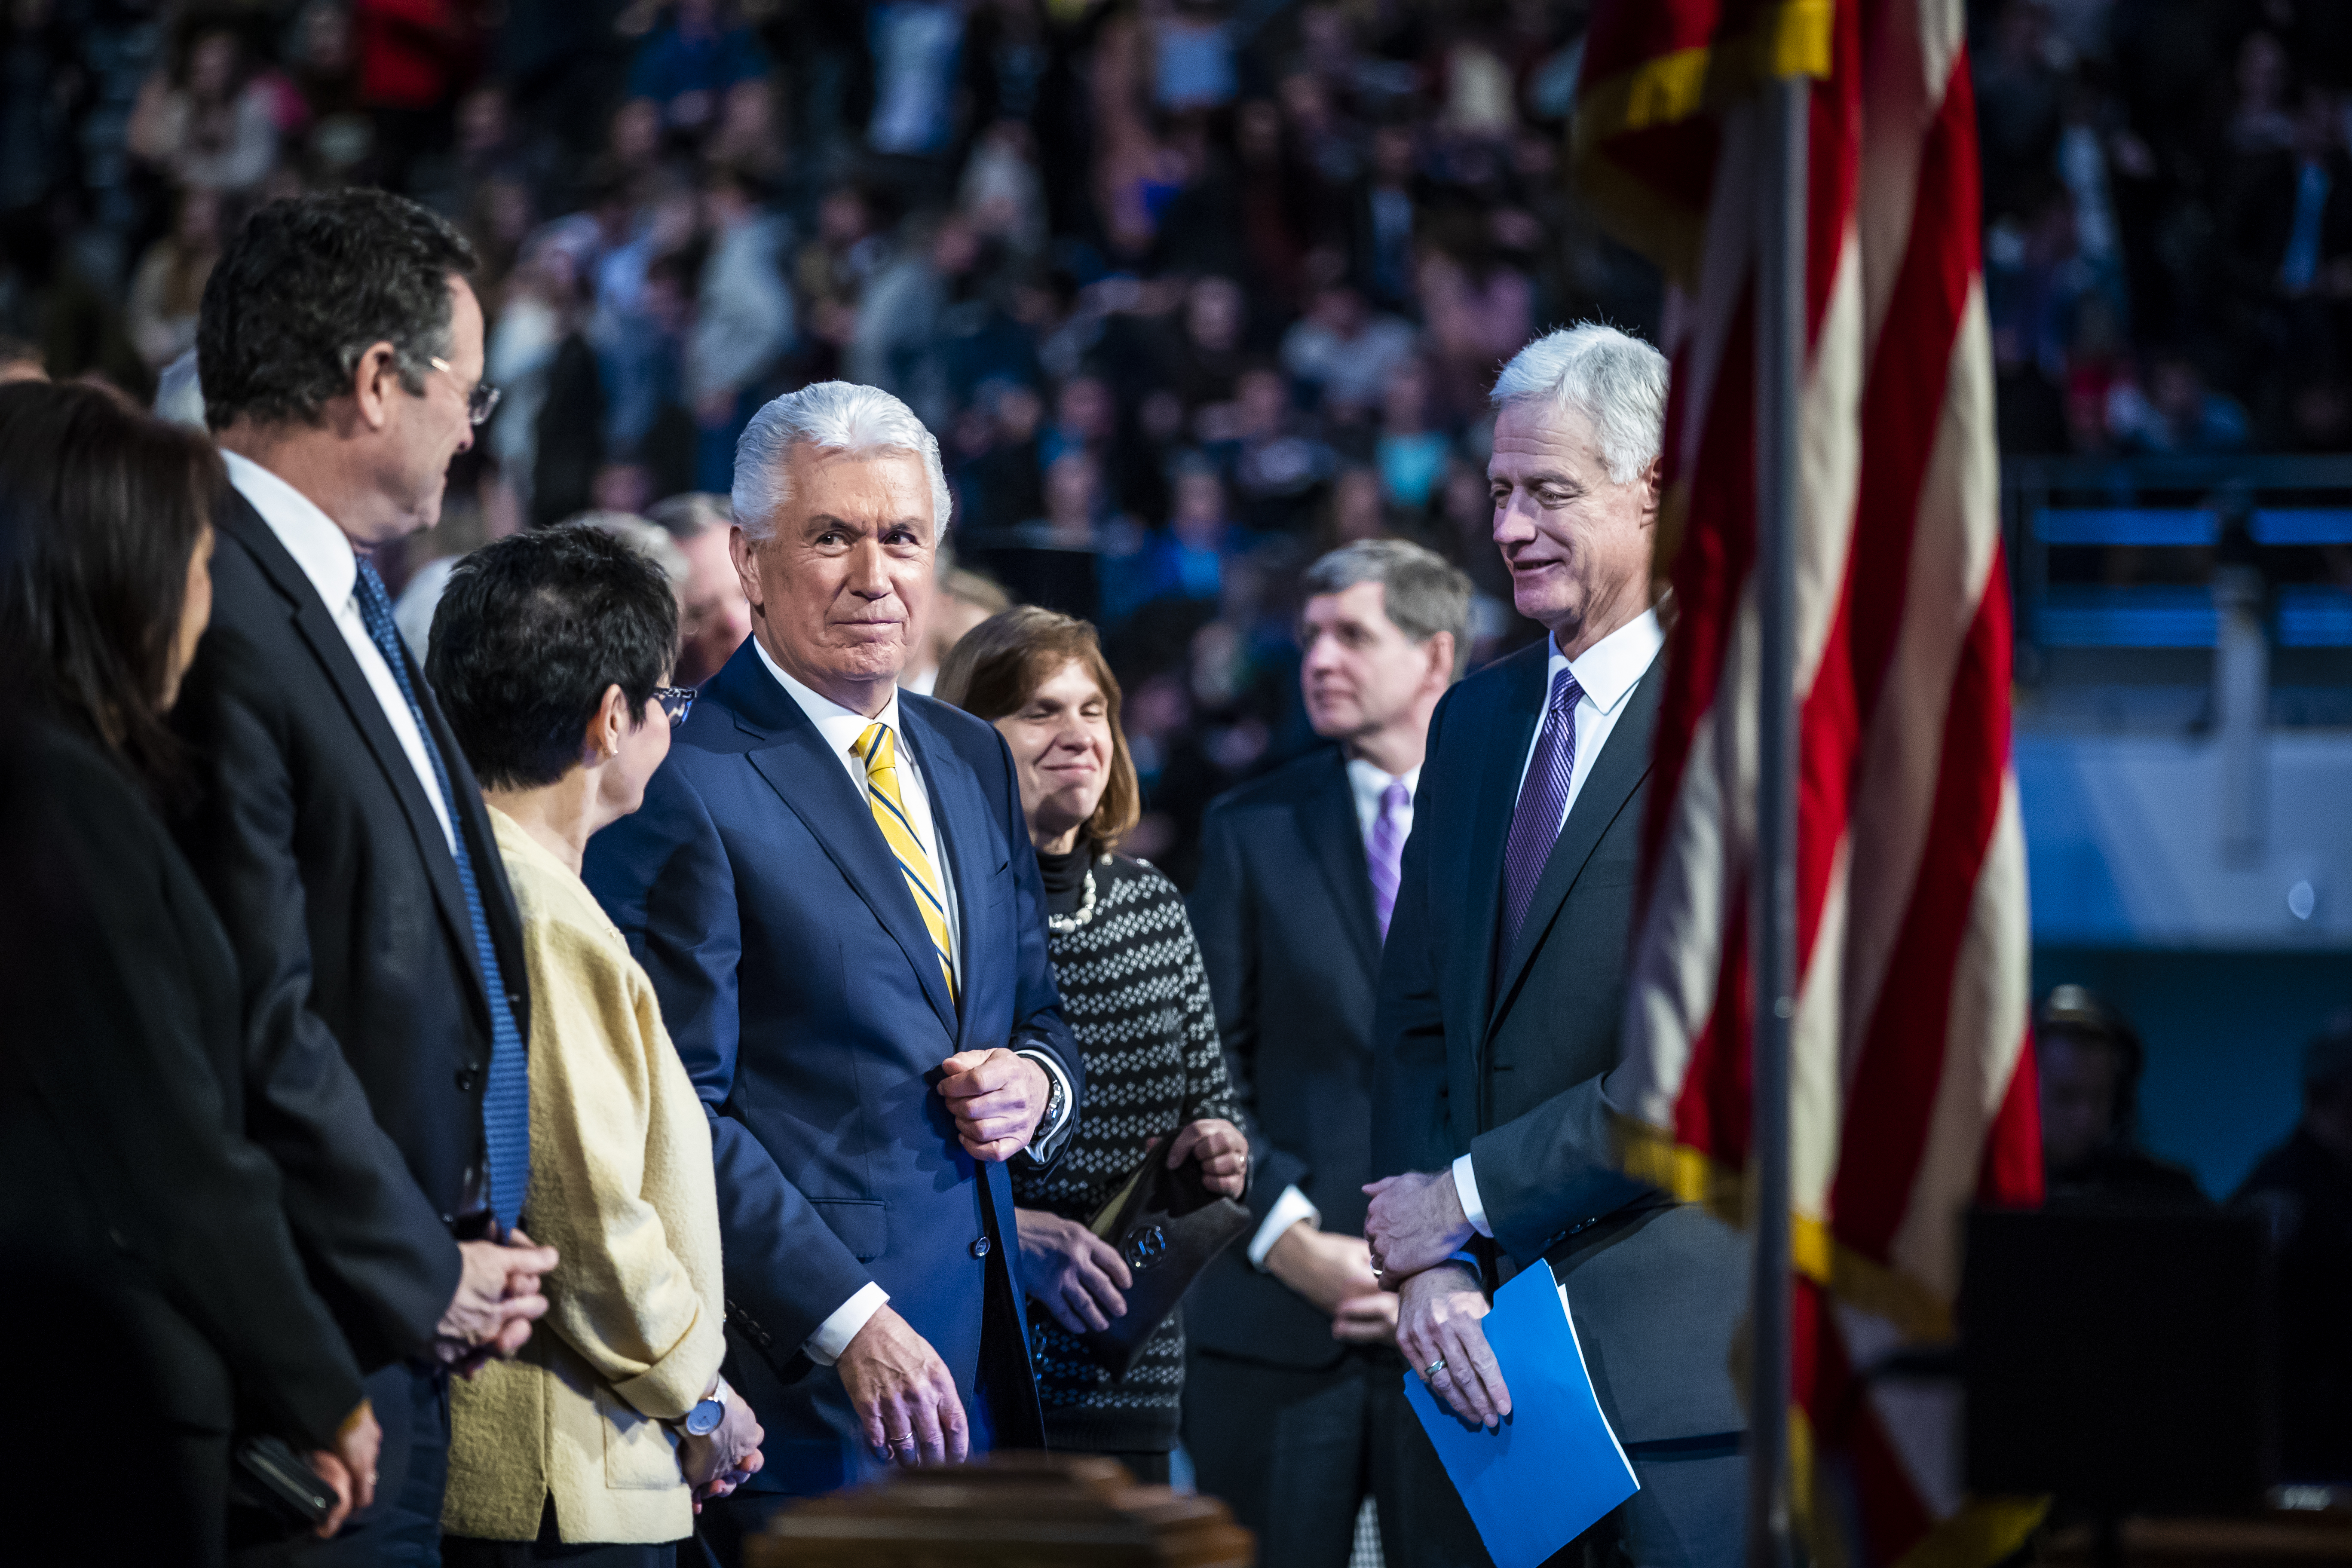 Elder Dieter F. Uchtdorf of the Quorum of the Twelve Apostles at a devotional on the BYU campus in Provo, Utah on Tuesday, Jan. 15, 2019.